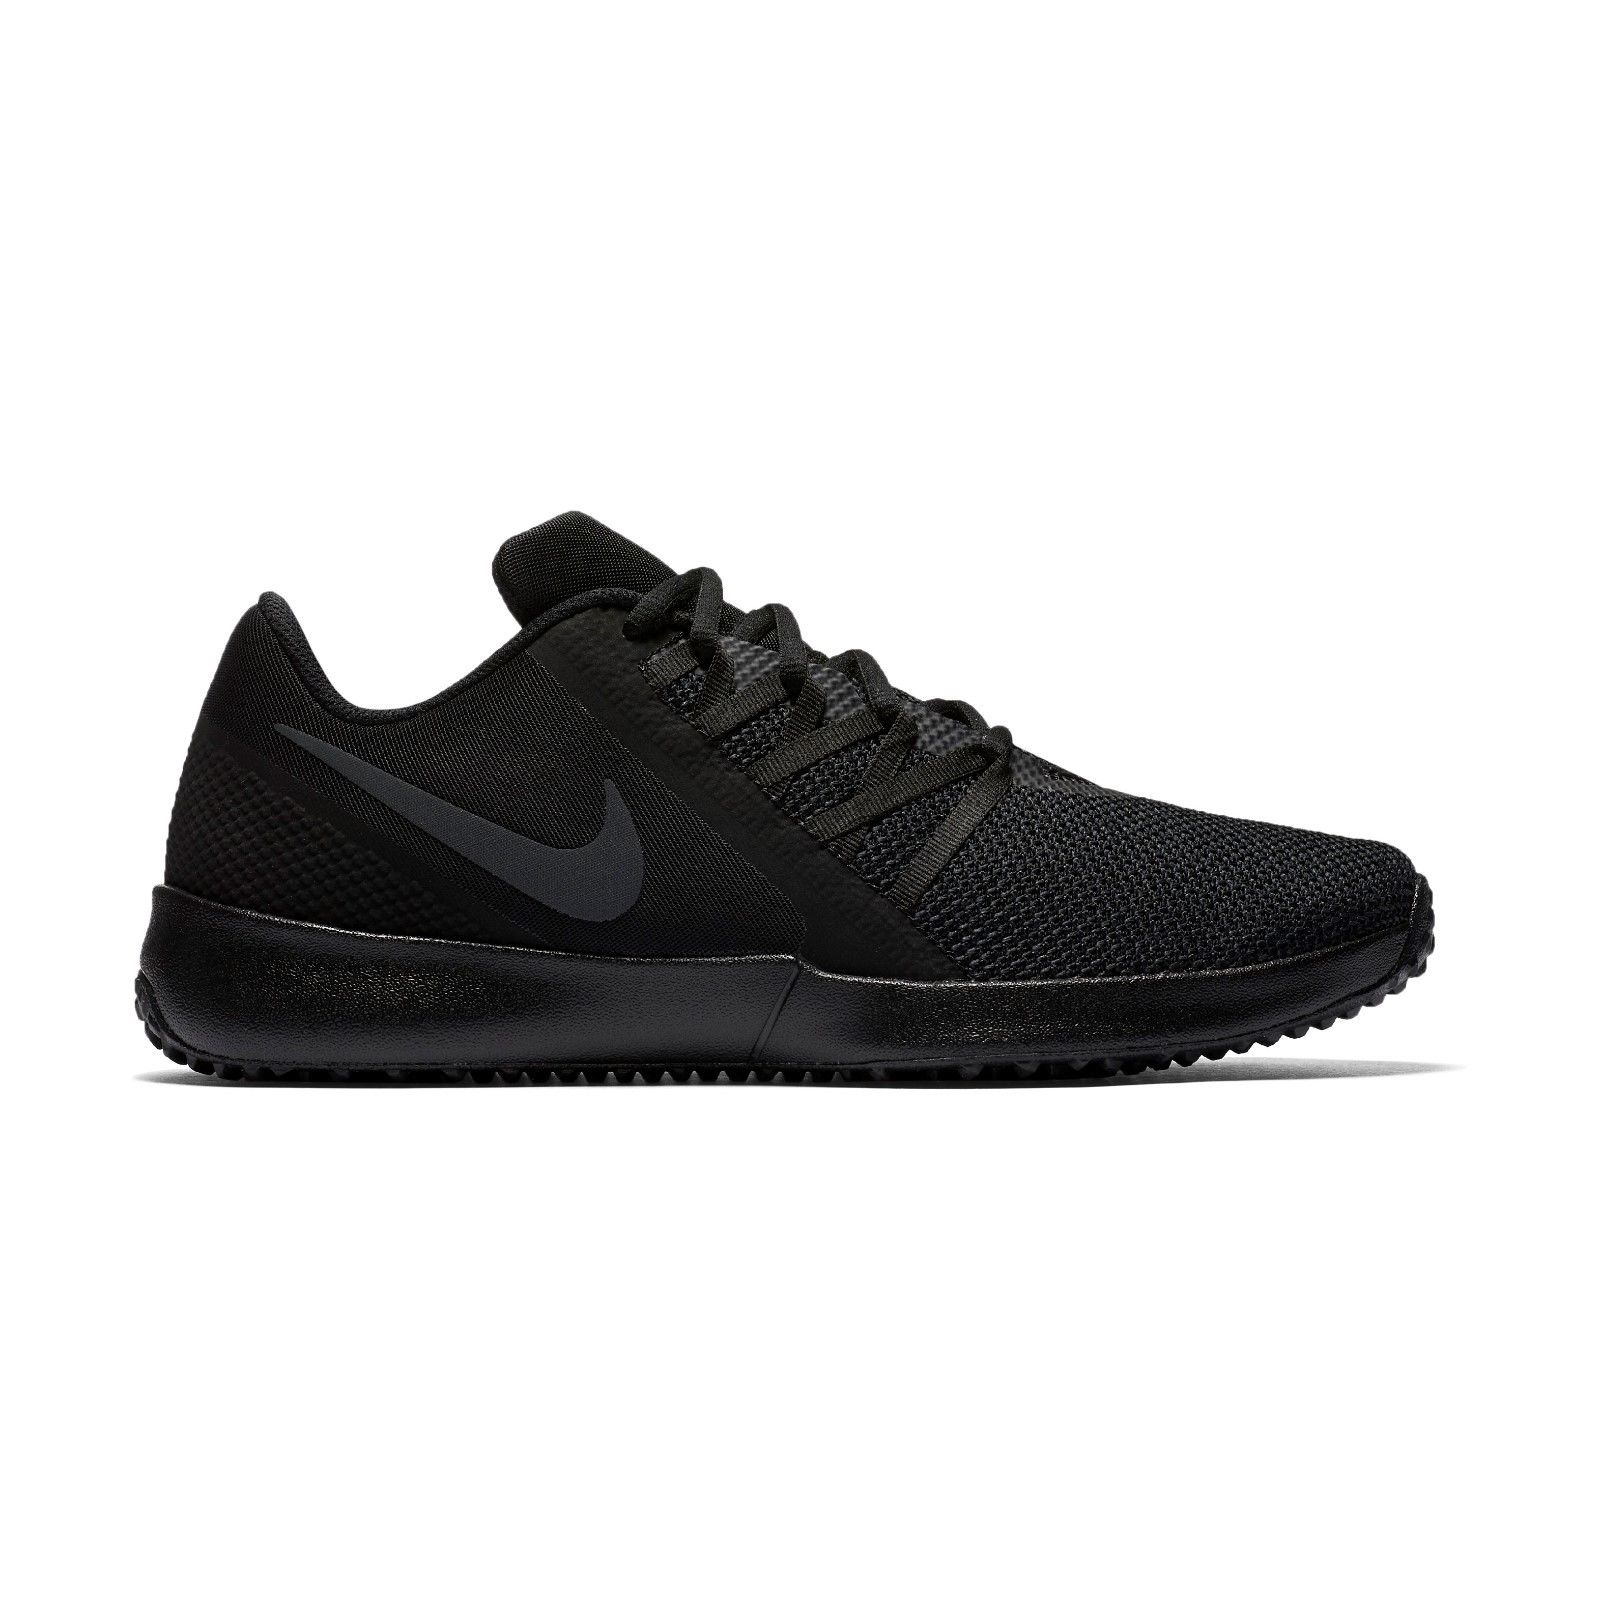 334159a6c3df Details about Nike Varsity Compete Trainer AA7064 002 Mens Trainers UK 7.5